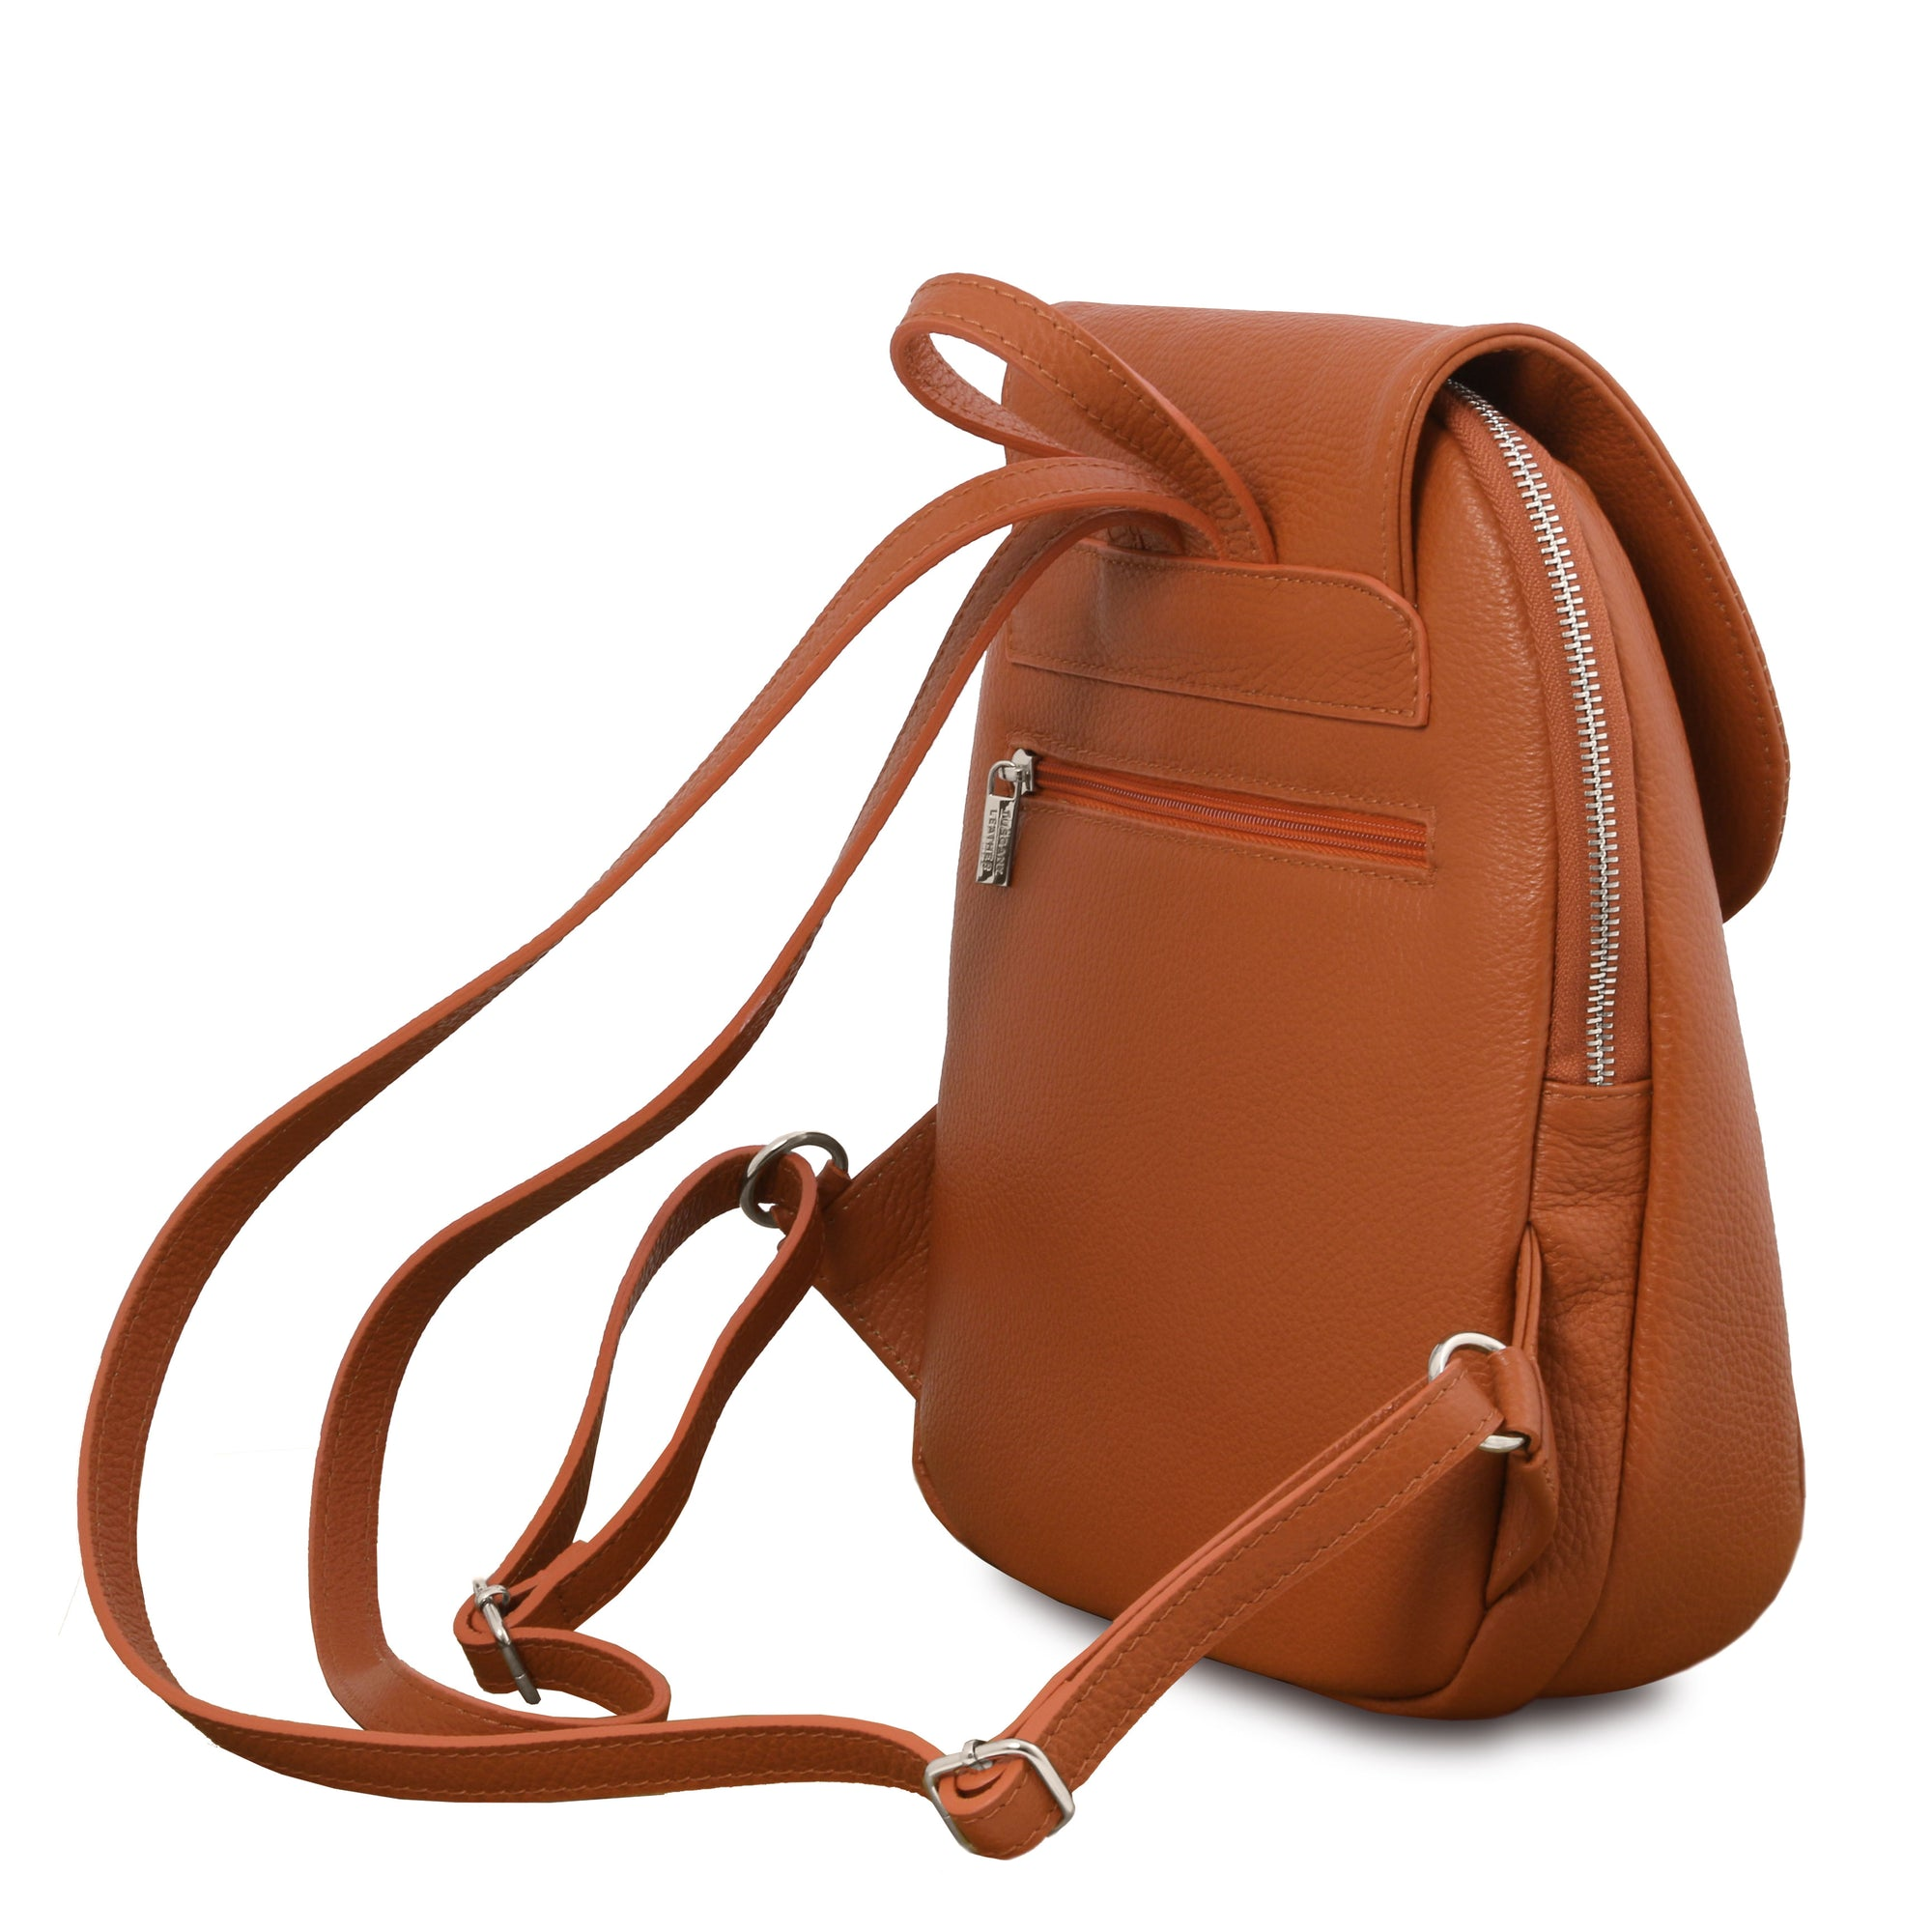 women backpack roll top backpack brown backpack women minimalist backpack for women  backpack roll top backpack kalocsa embroidery  pattern